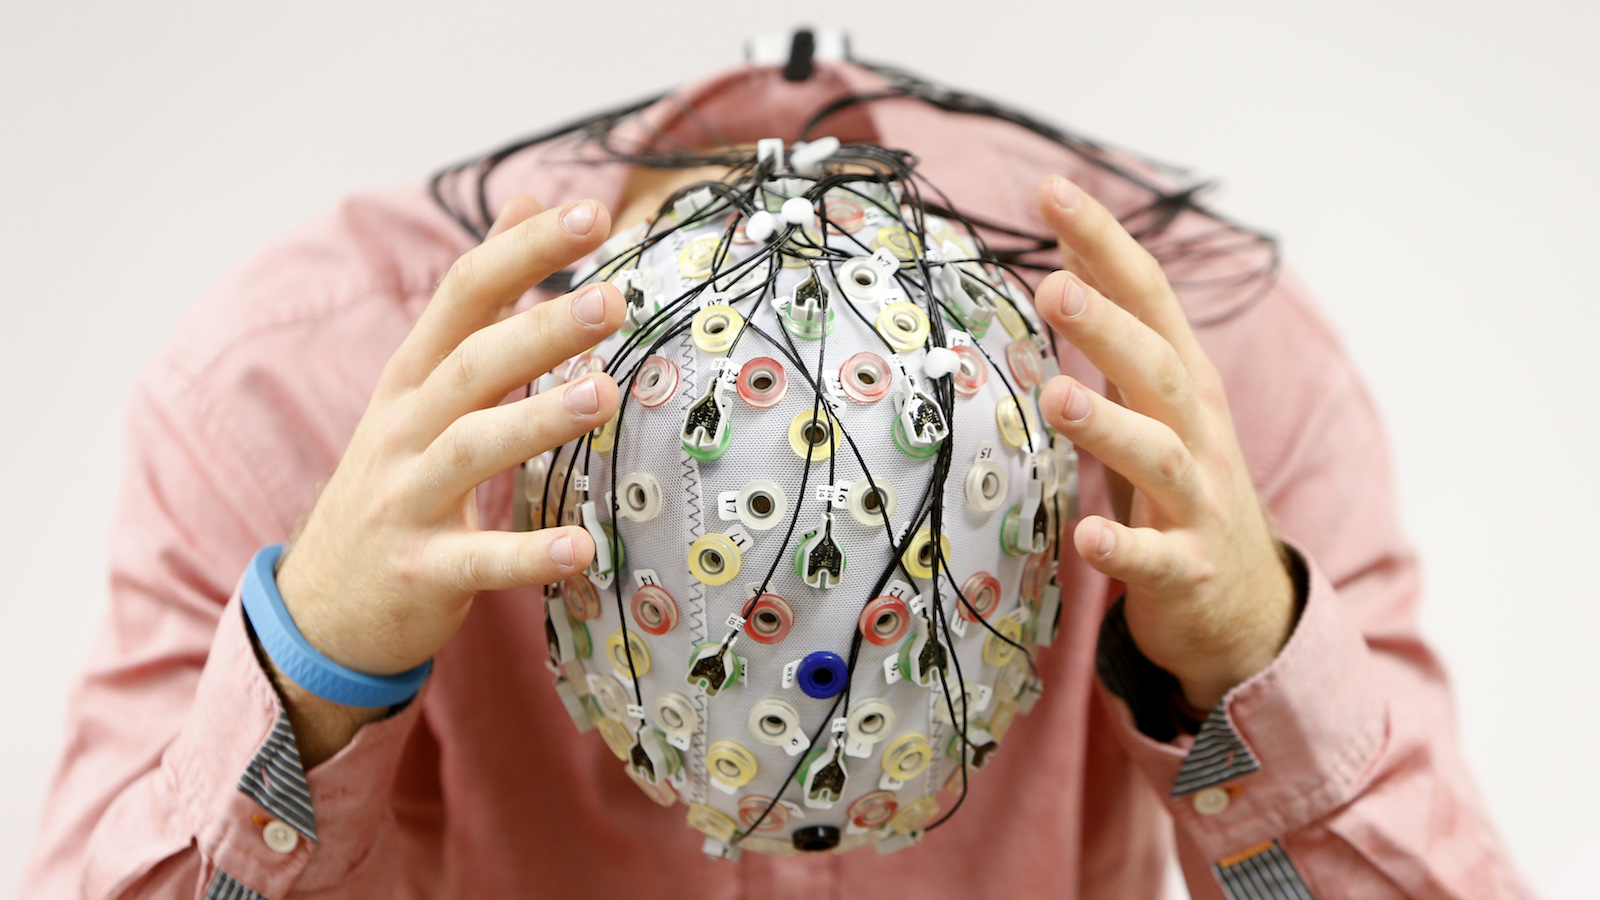 Test person Niklas Thiel poses with an electroencephalography (EEG) cap which measures brain activity, at the Technische Universitaet Muenchen (TUM) in Garching near Munich September 9, 2014. The researchers from TUM and the Technische Universitaet Berlin (team Phypa) try to find ways to control an airplane with computer translated brain impulses without the pilot touching the plane's controls. The solution, if achieved, would contribute to greater flight safety and reduce pilots' workload. Picture taken September 9, 2014.    REUTERS/Michaela Rehle (GERMANY - Tags: SCIENCE TECHNOLOGY SOCIETY TPX IMAGES OF THE DAY)